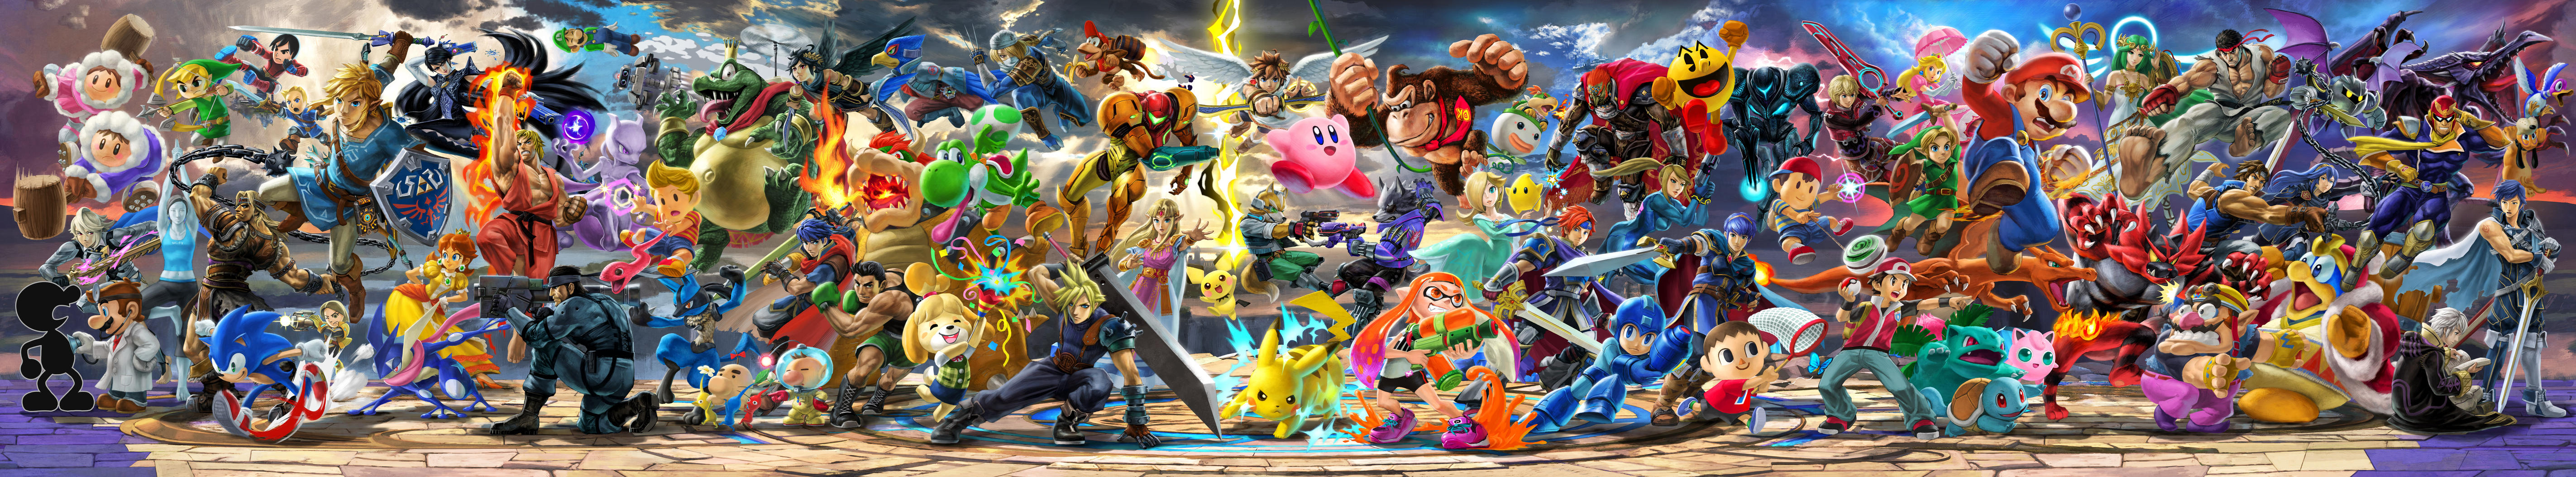 Image result for smash ultimate poster